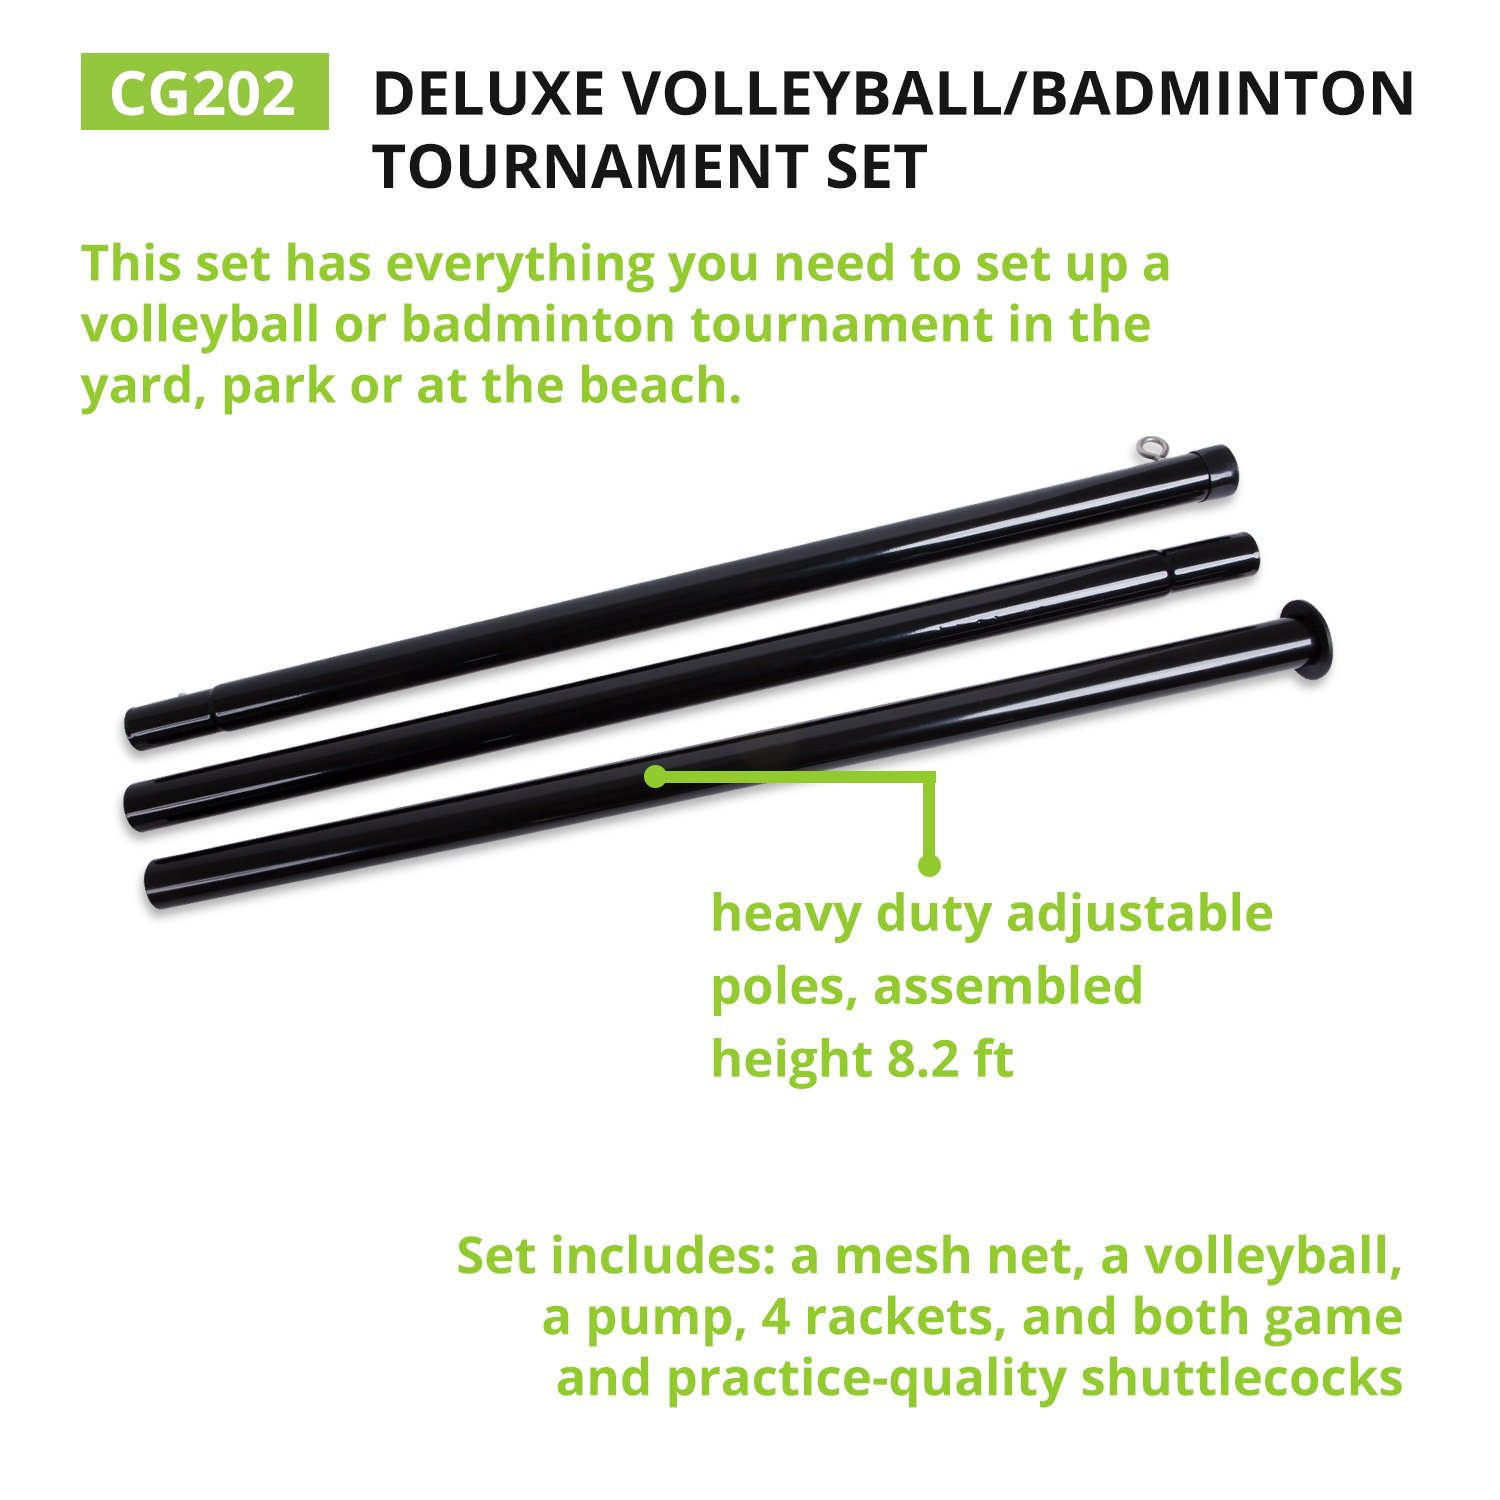 Champion Sports Volleyball & Badminton Set: Net, Poles, Ball, Rackets & Shuttlecocks - Portable Equipment for Outdoor, Lawn, Beach & Tournament Games by Champion Sports (Image #6)